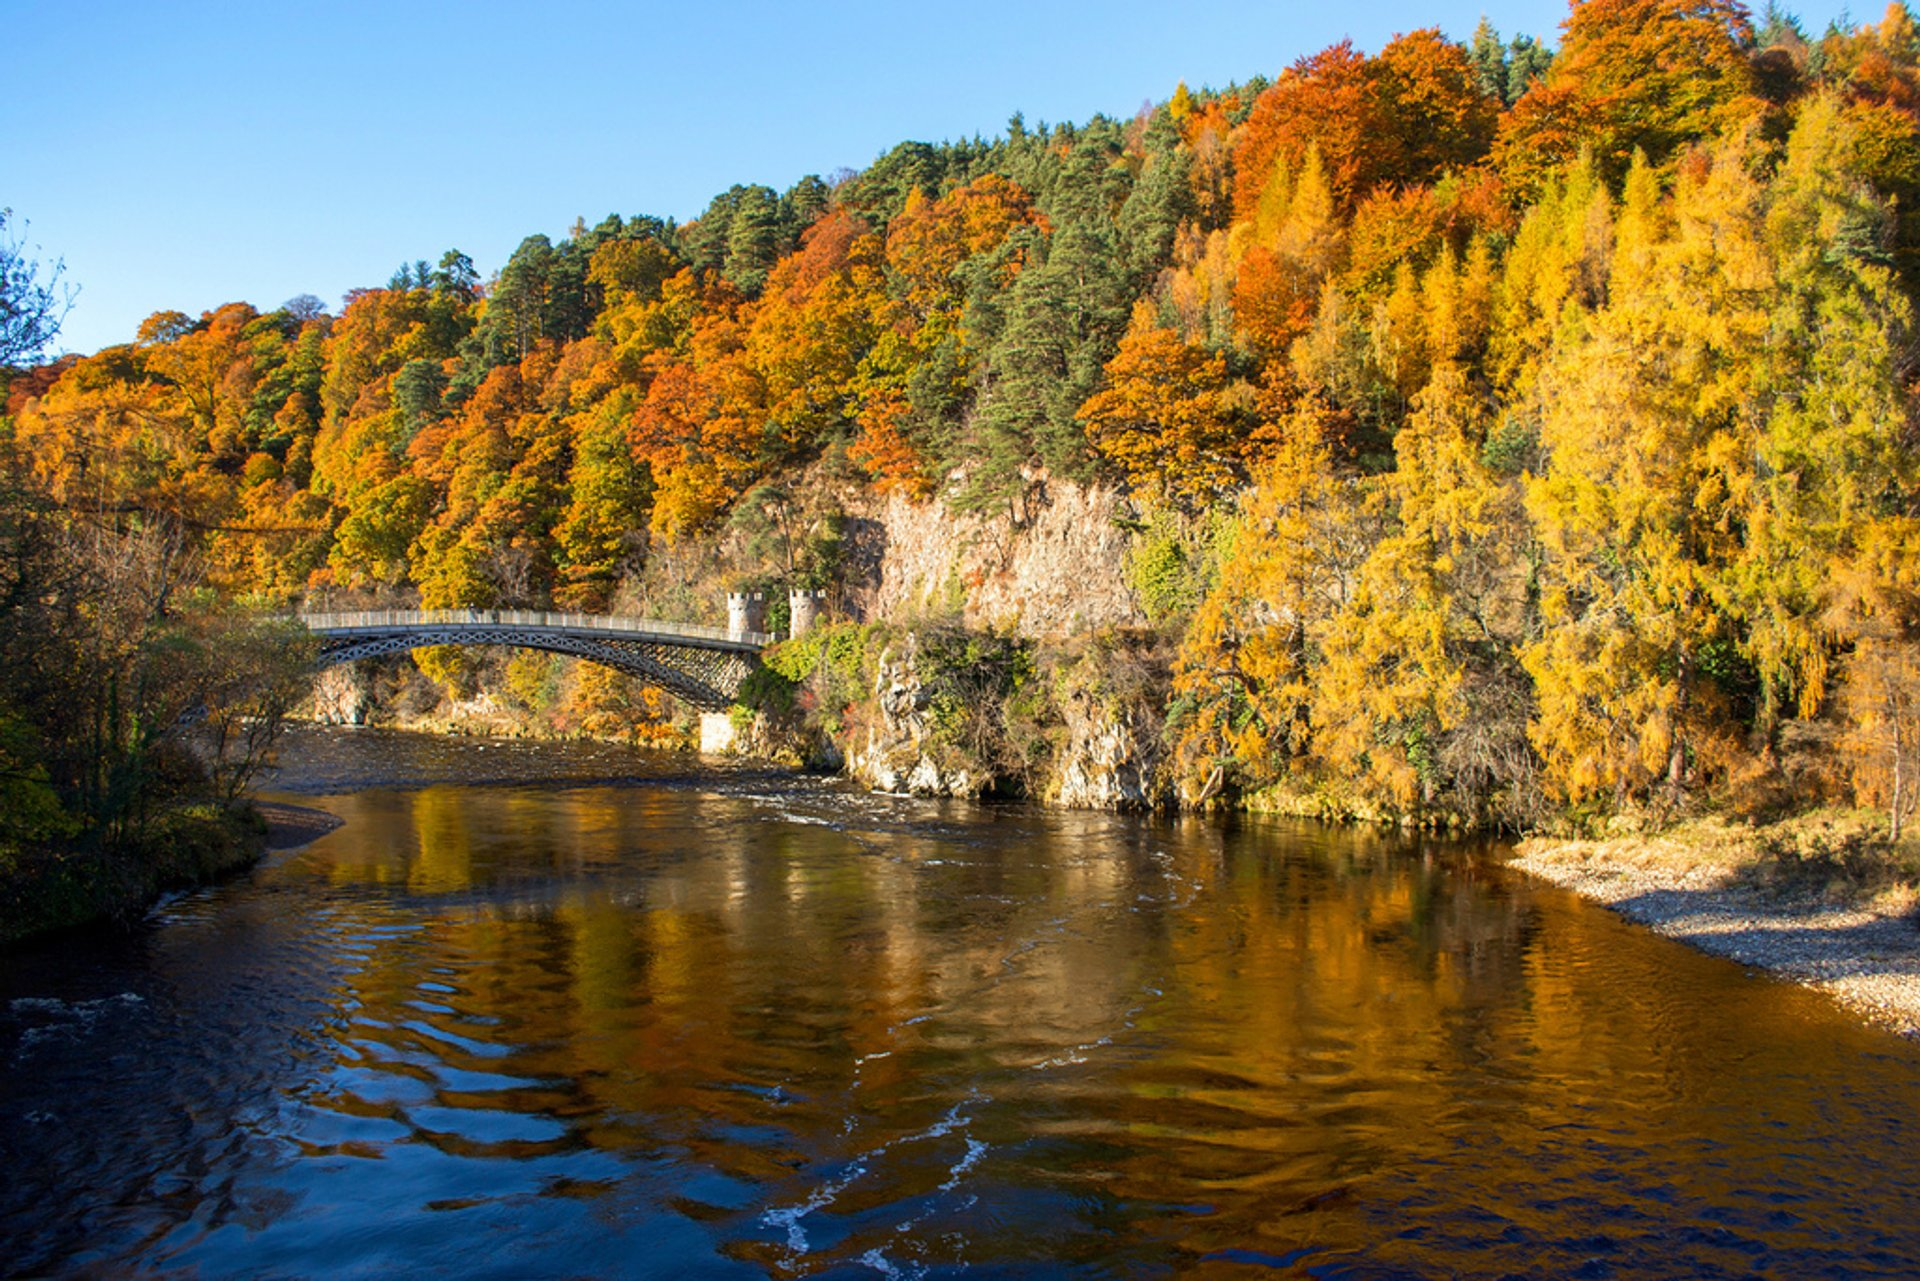 Craigellachie Bridge across the River Spey at Craigellachie, in the vicinity of to Aberlour village in Scotland 2020